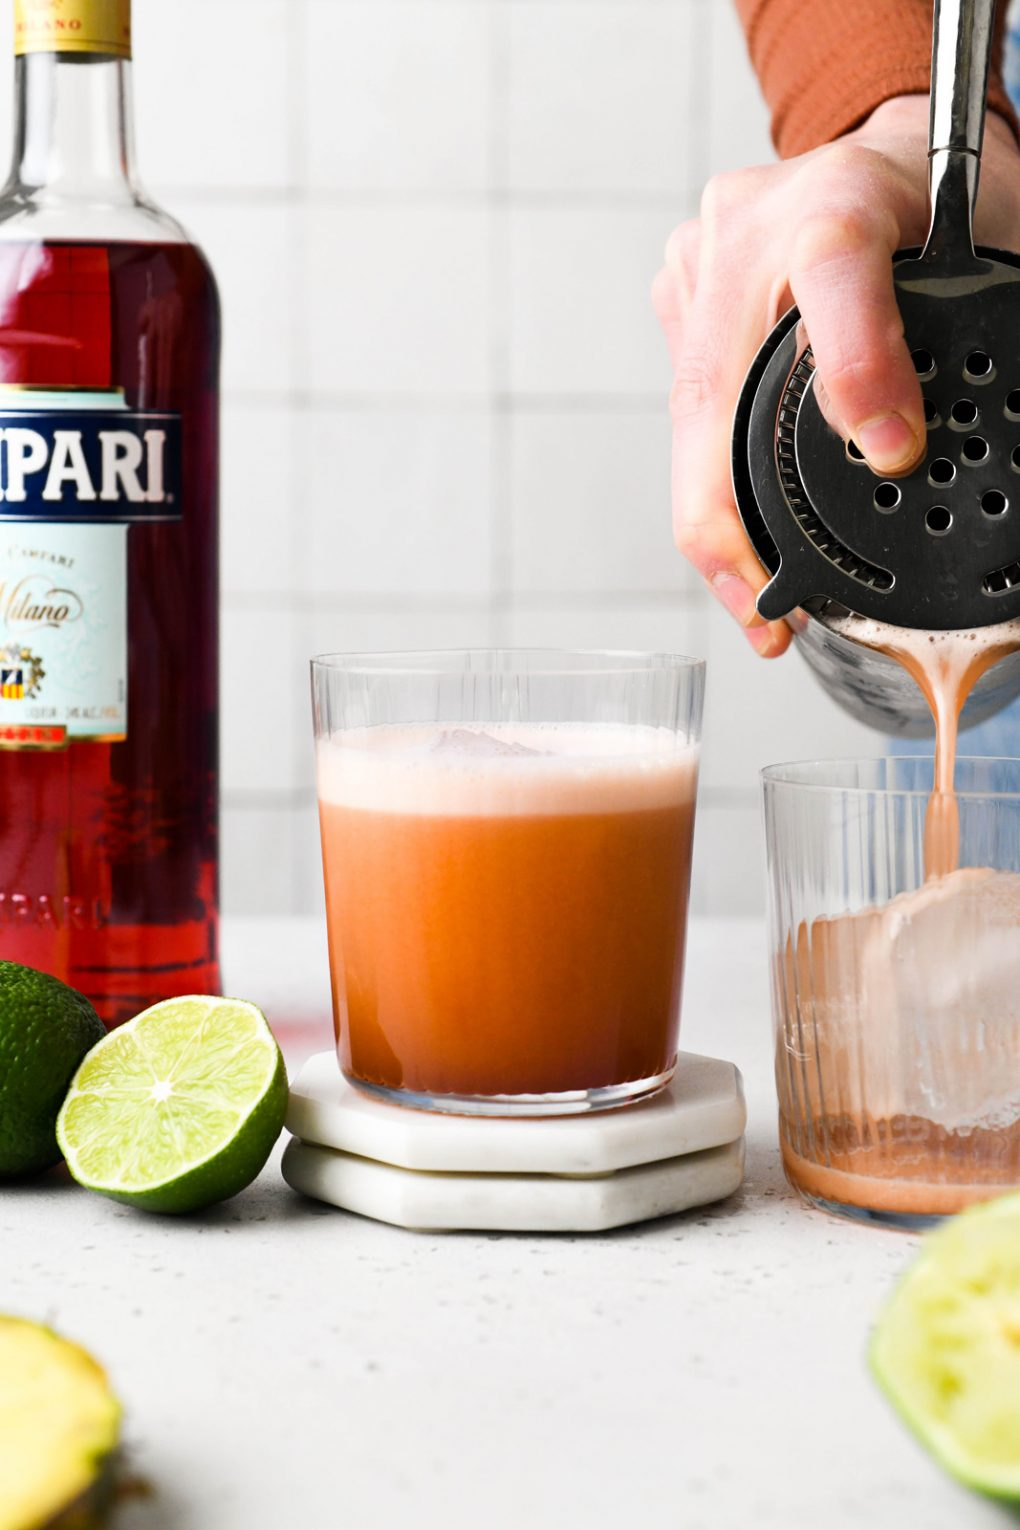 Straight on shot of a tropical jungle bird cocktail being poured into a glass with ice. On a white background, next to half a lime, and a bottle of campari.